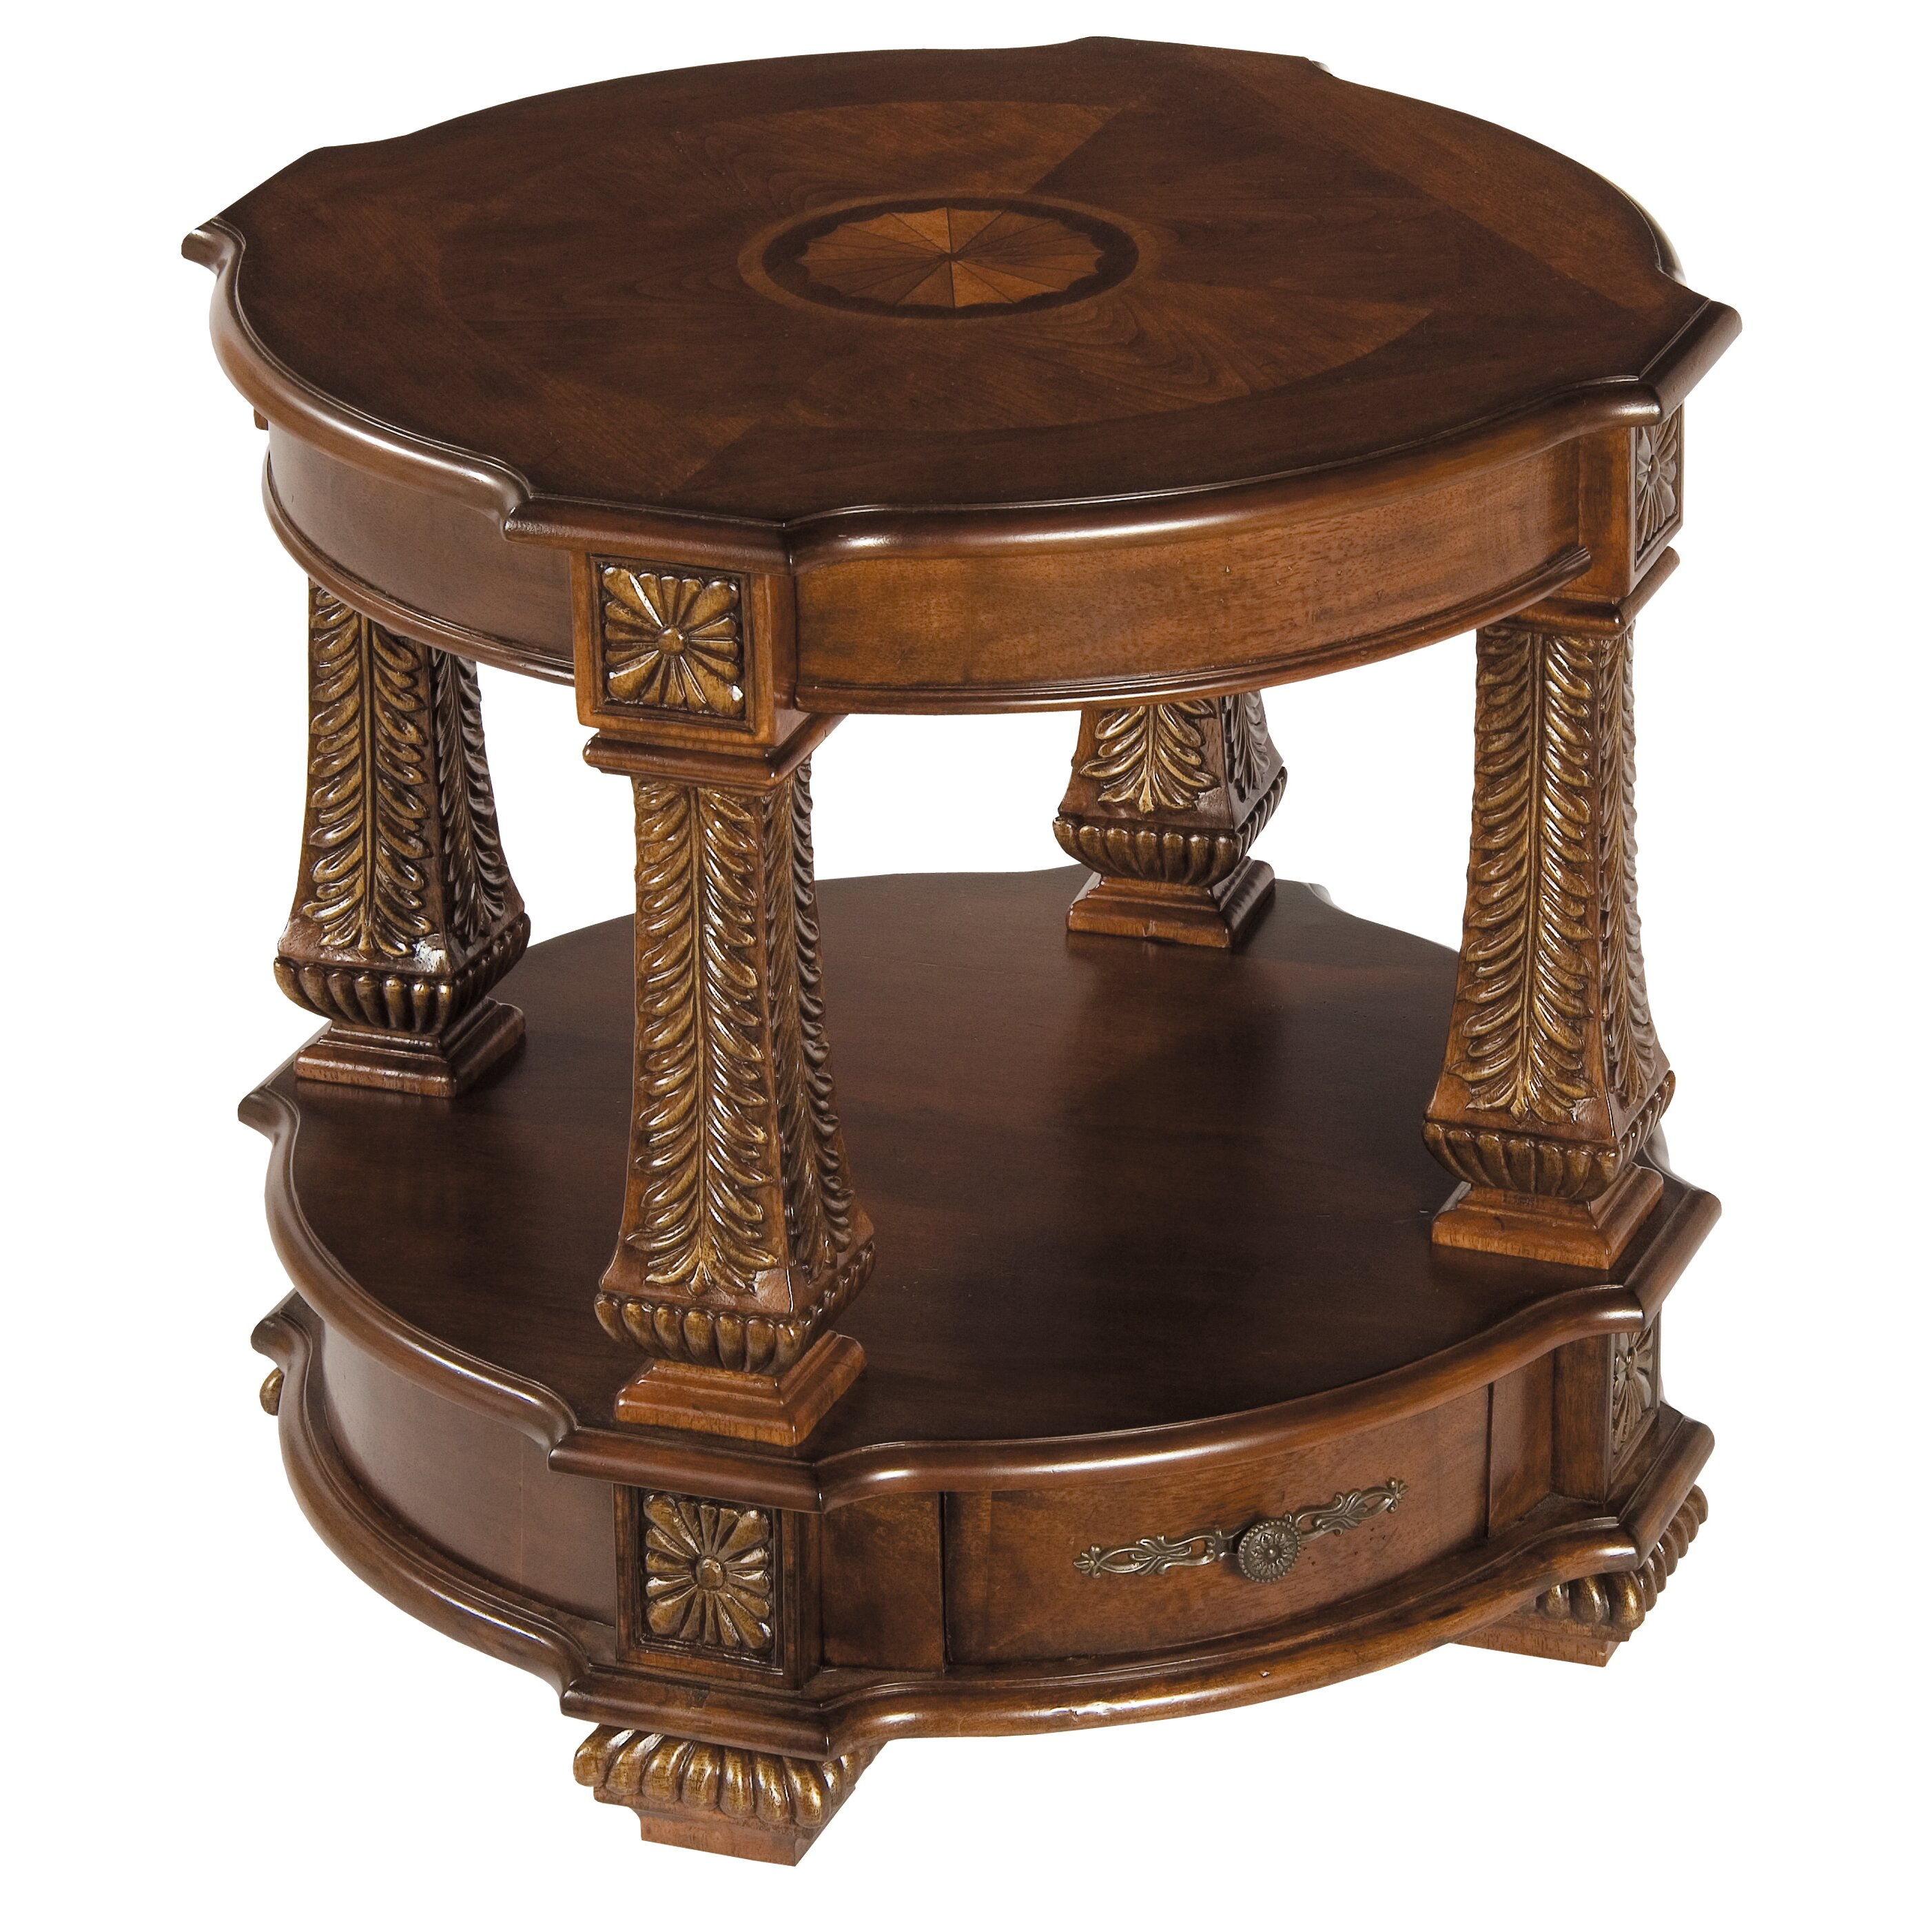 Astoria grand rivage round end table reviews wayfair for End tables for sale near me